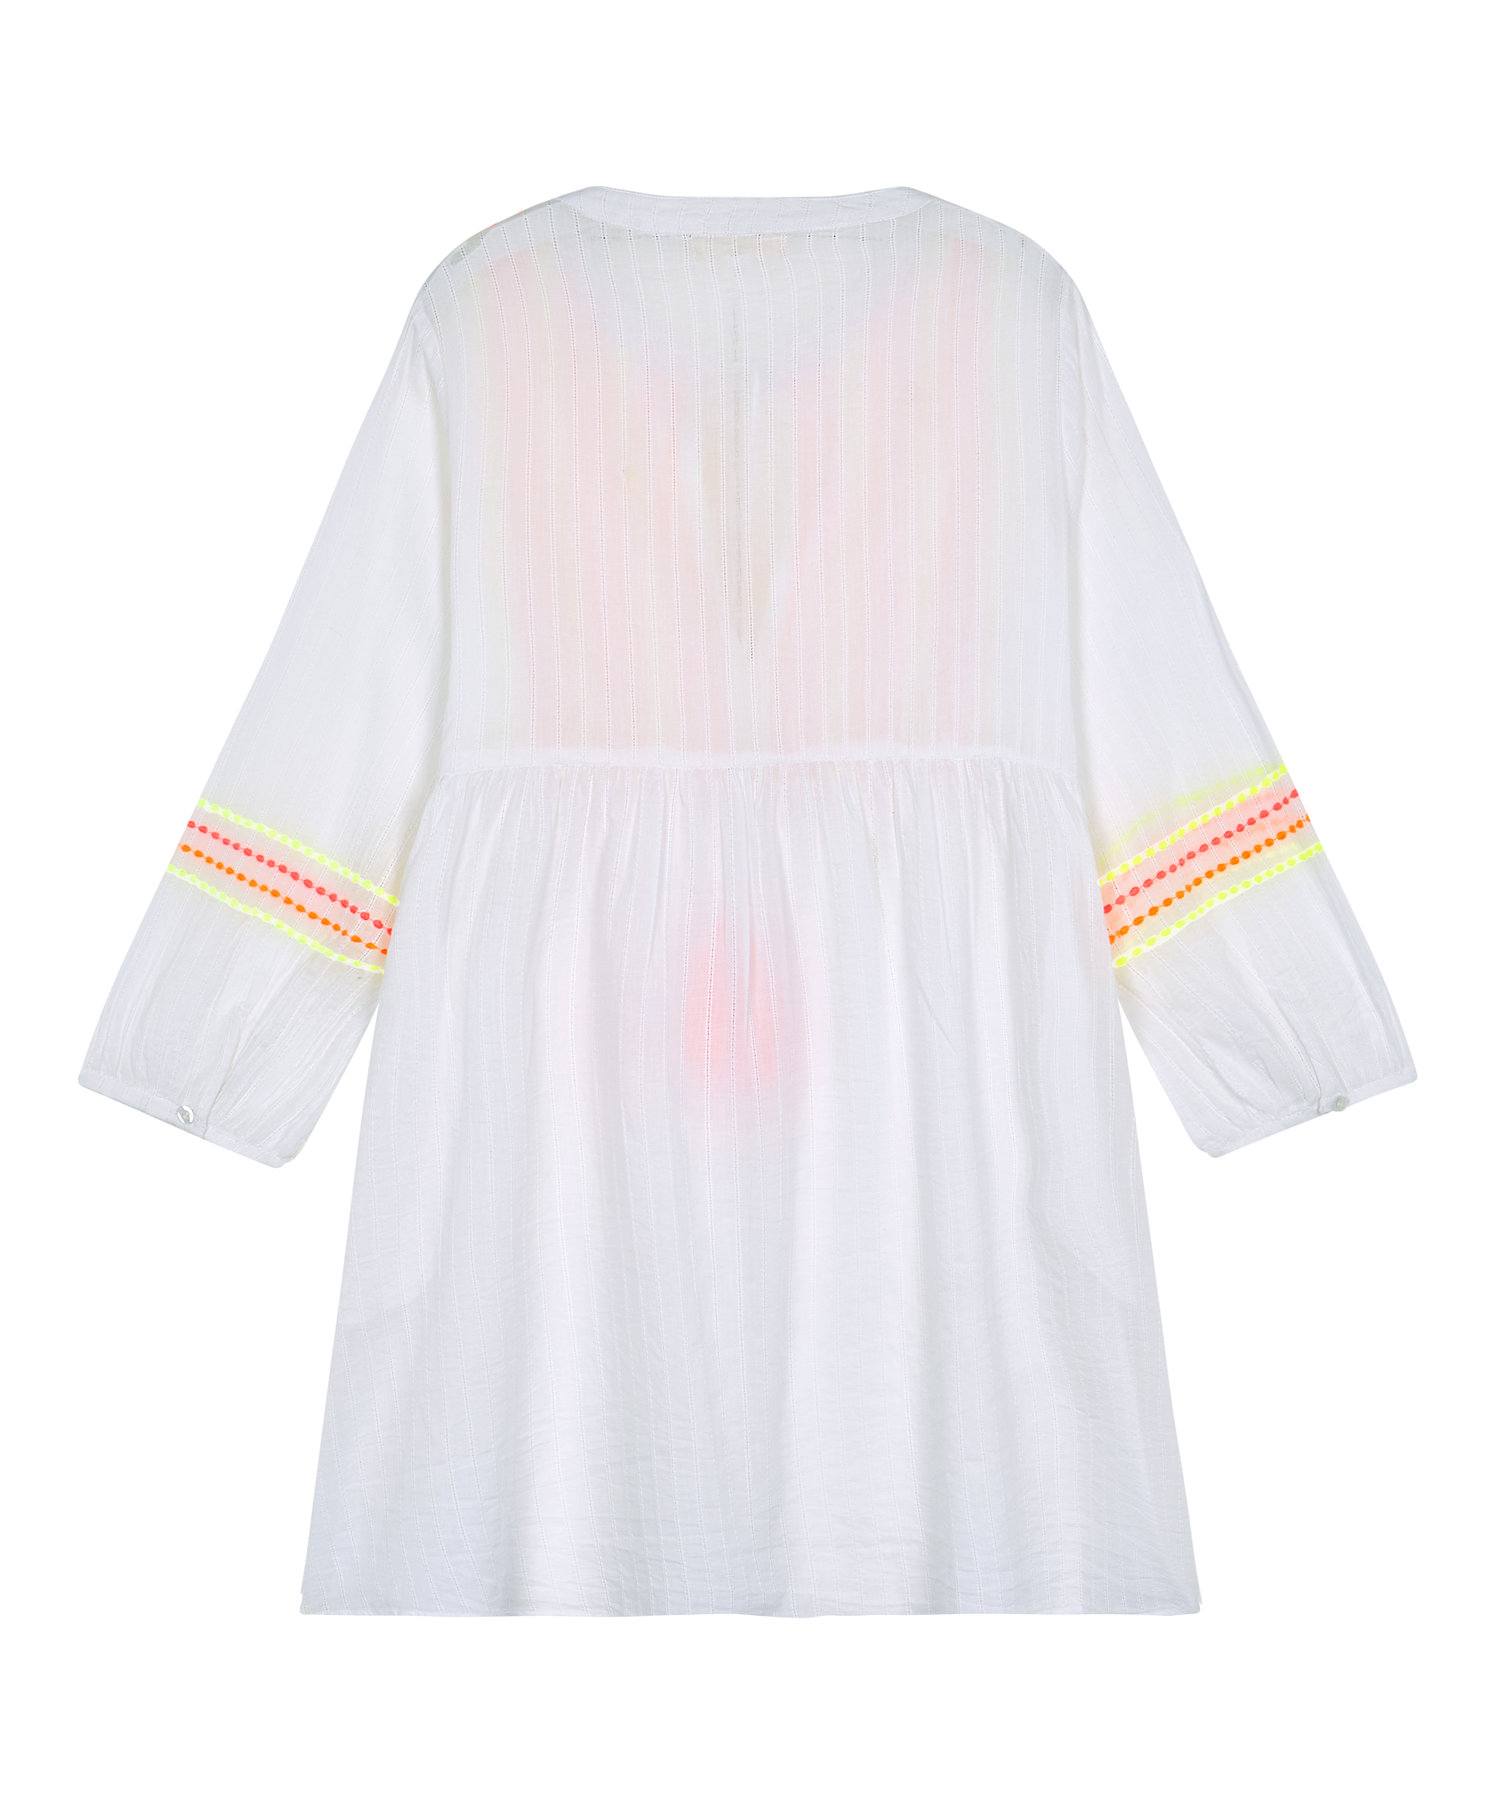 31576b4afdd Ladies White Embroidered Neon Lines Beach Dress — Gussy and Lou